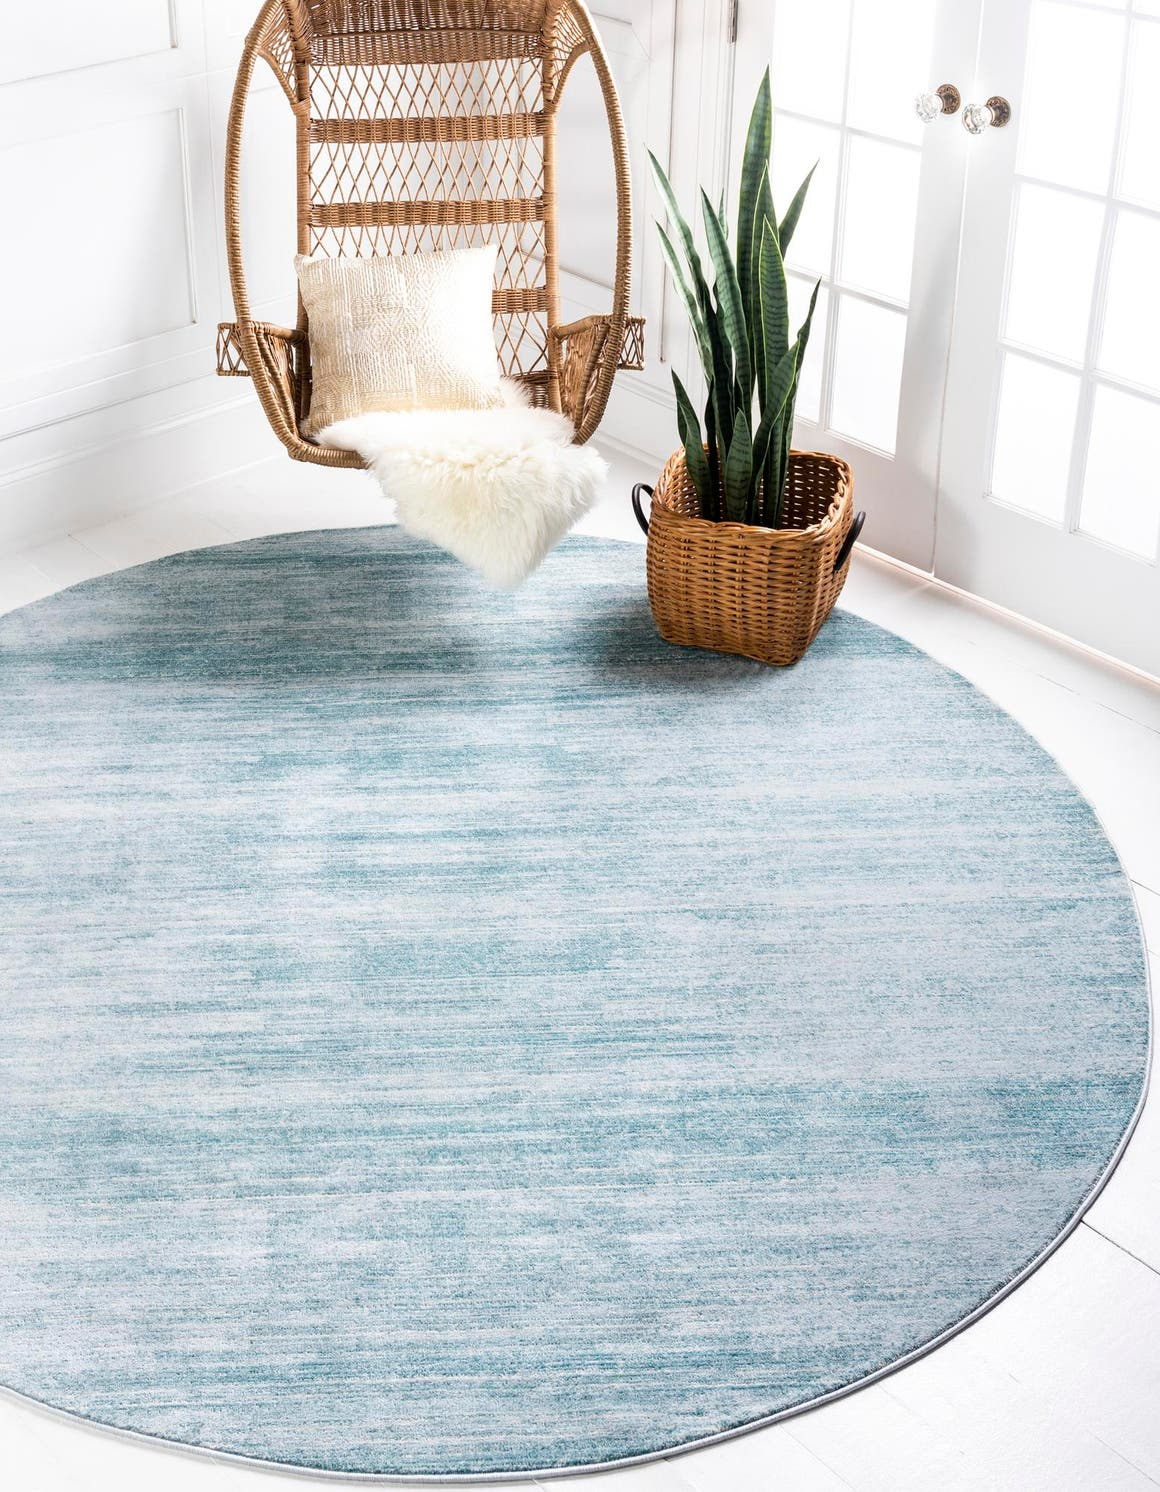 Turquoise Jill Zarin 8 X 8 Uptown Collection Round Rug